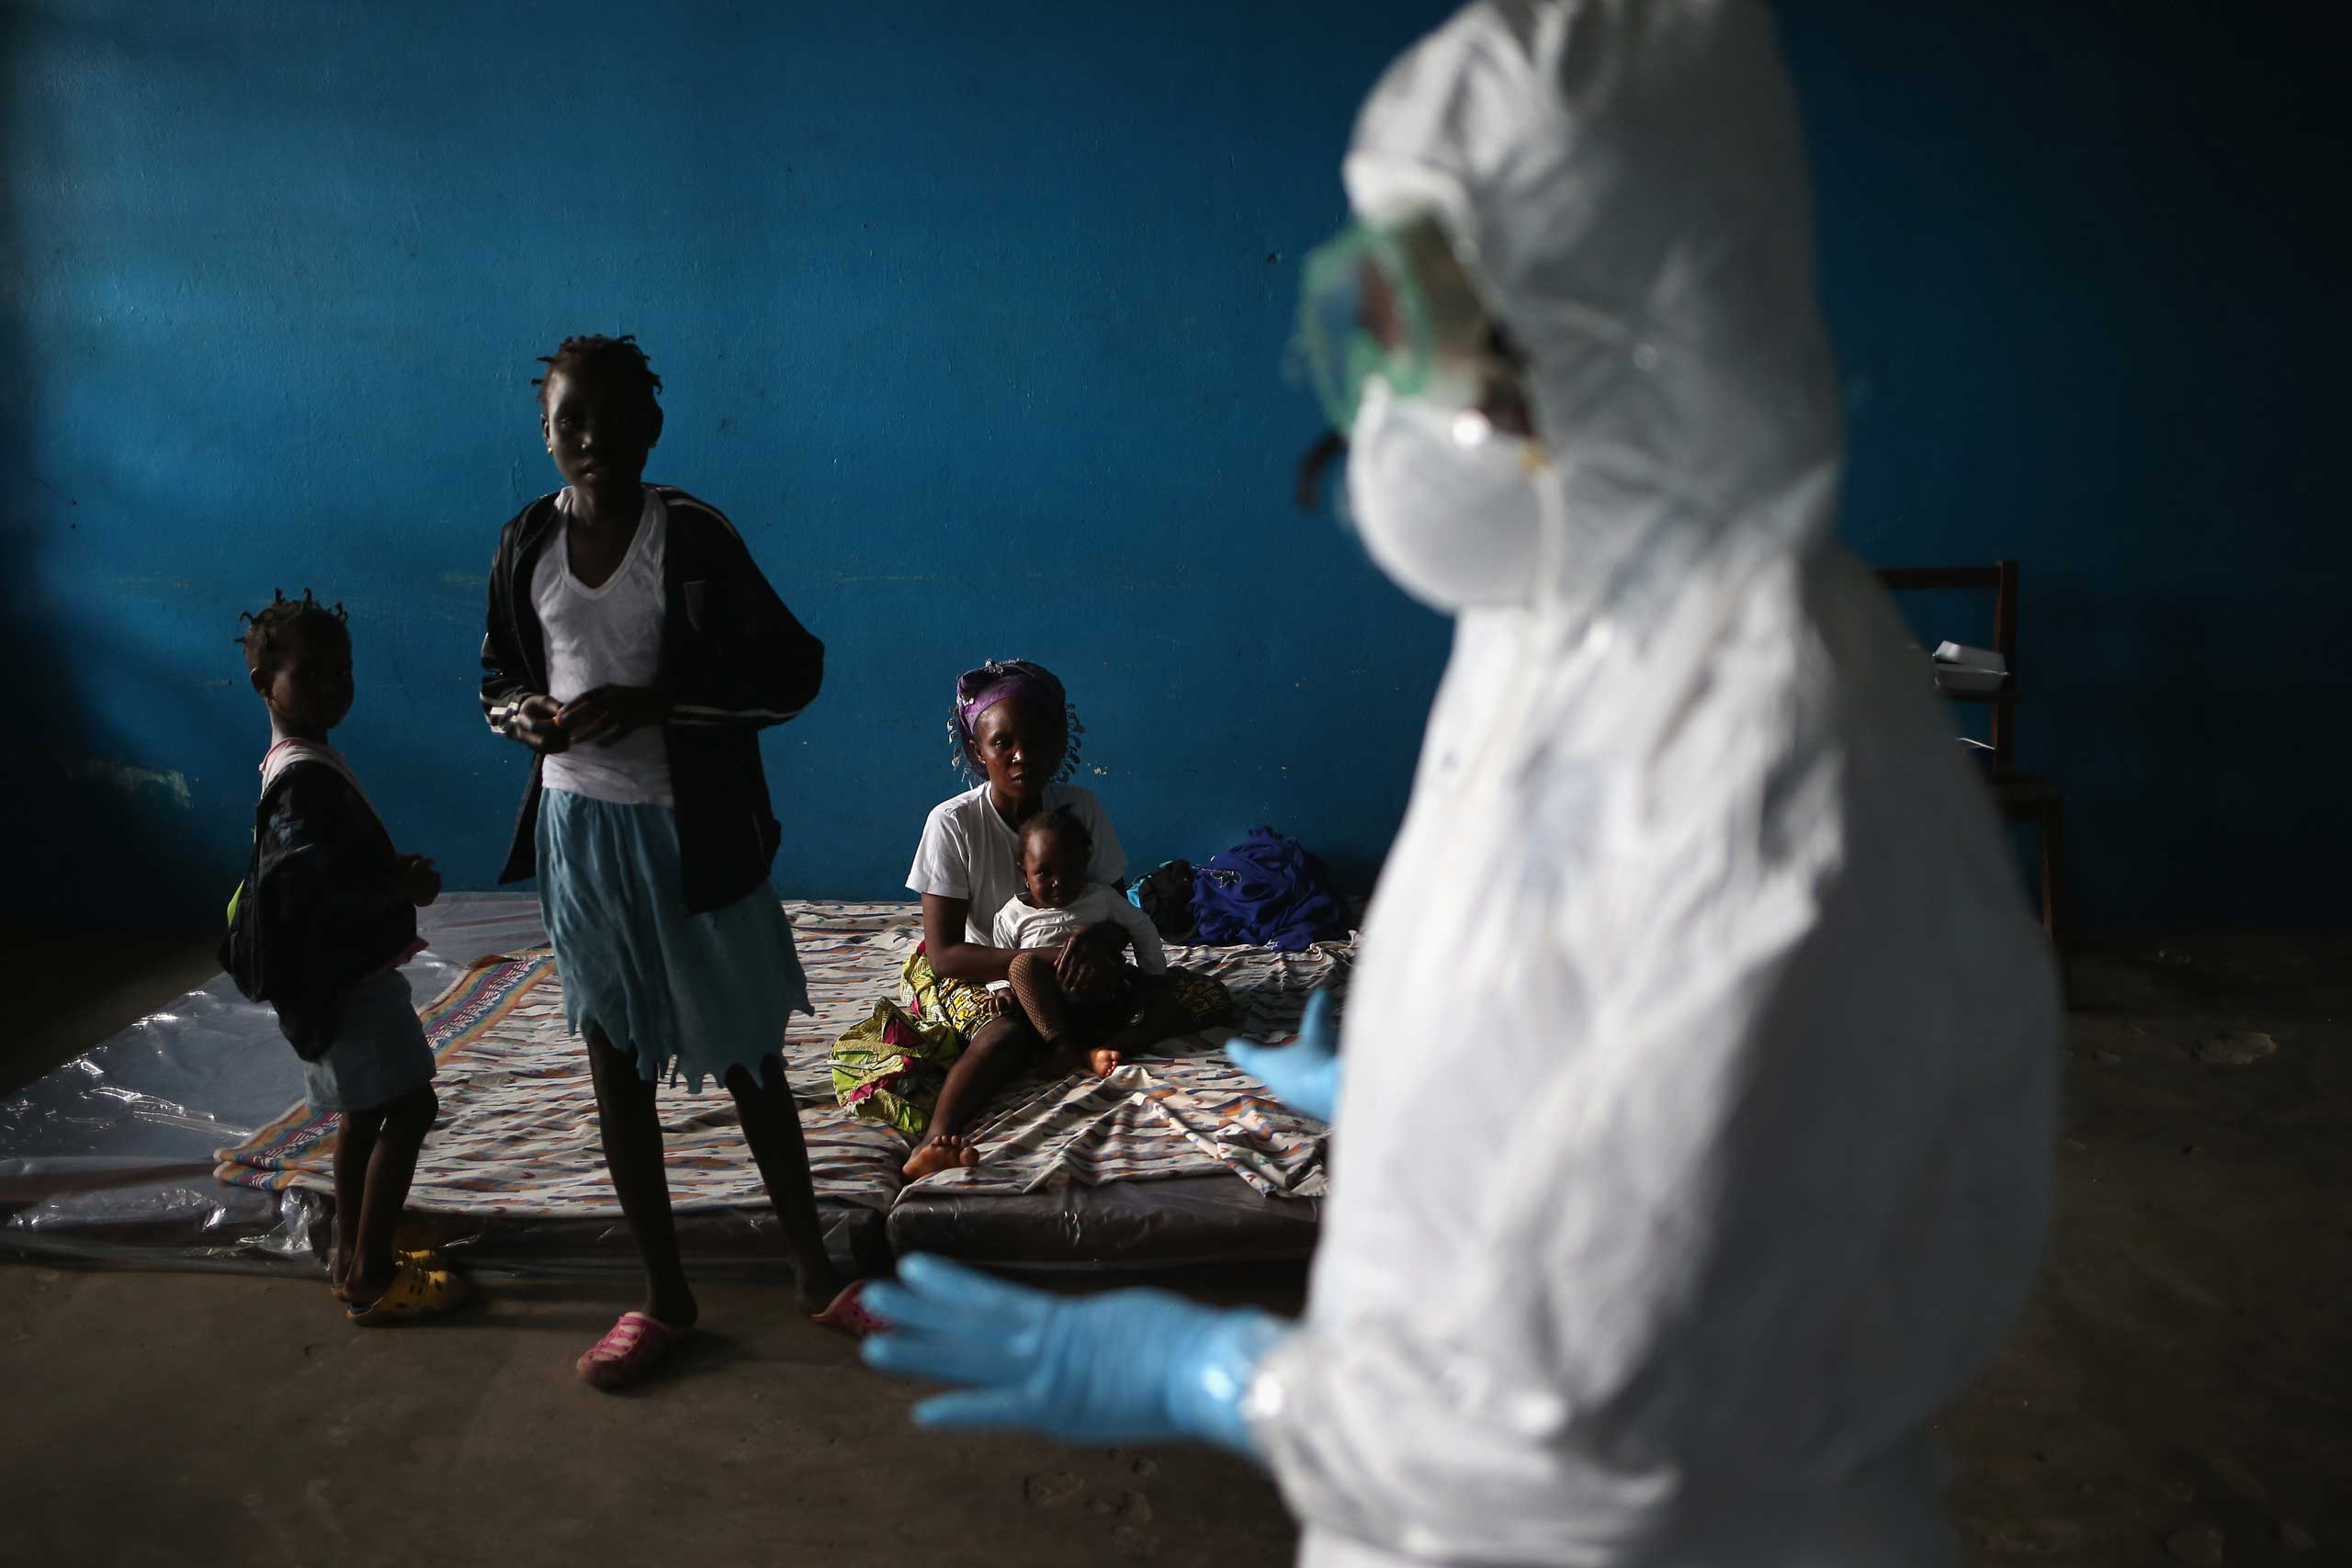 A Liberian health worker speaks with families in a classroom now used as Ebola isolation ward on Aug. 15, 2014 in Monrovia.